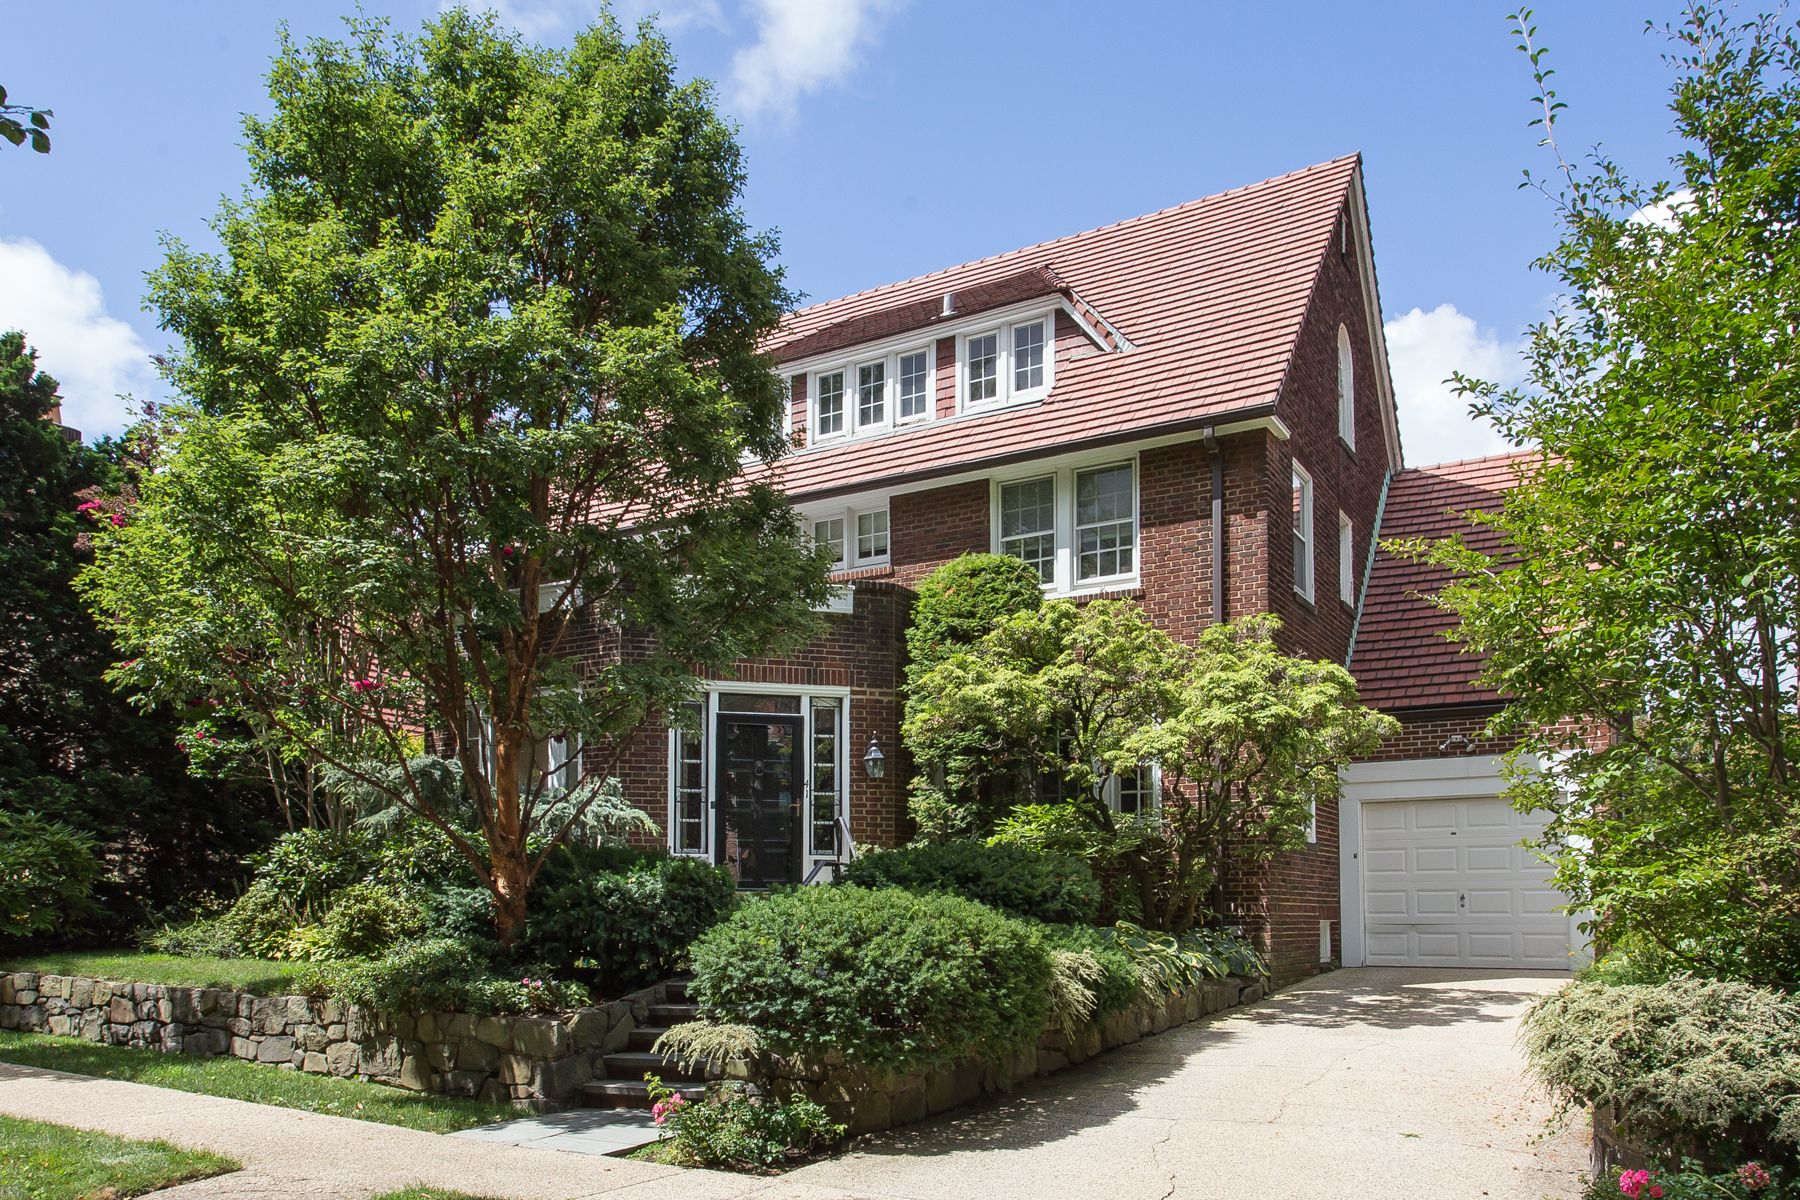 a9bccc61c6fd806f0251334ac6c512c4 - Forest Hills Gardens Real Estate Sotheby's